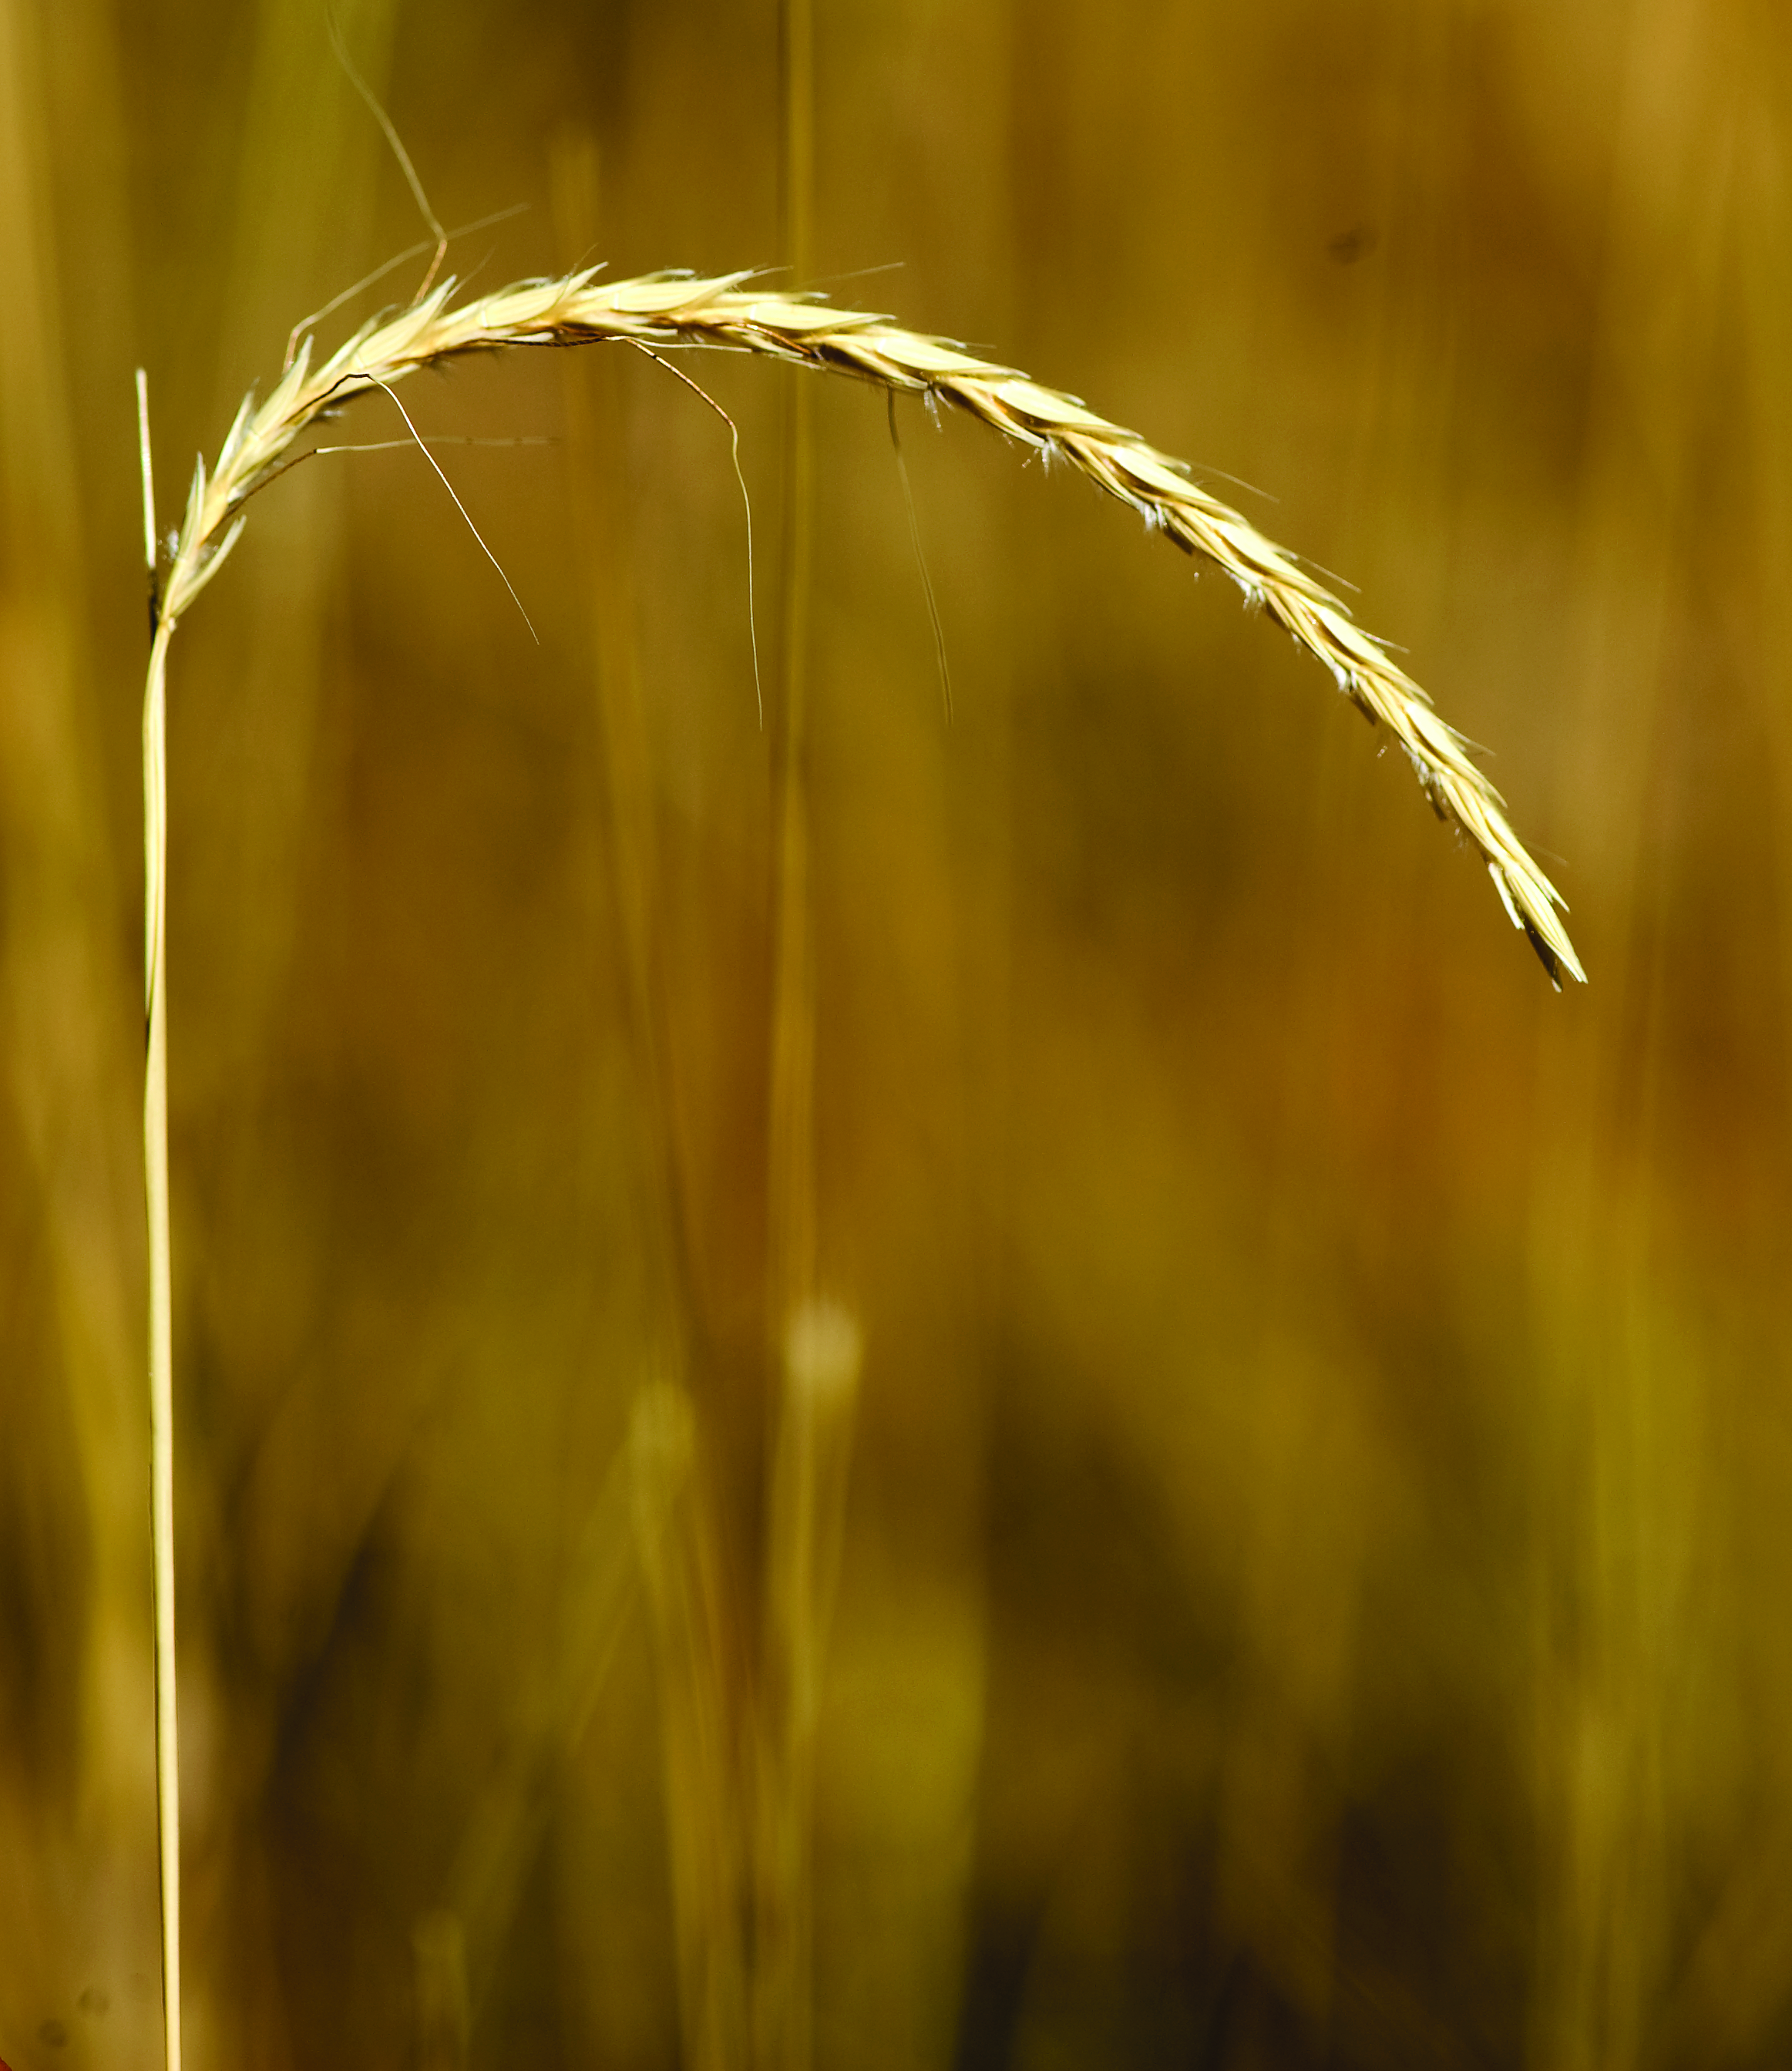 The seed head of white grass is cylindrical with awns protruding from each seed.